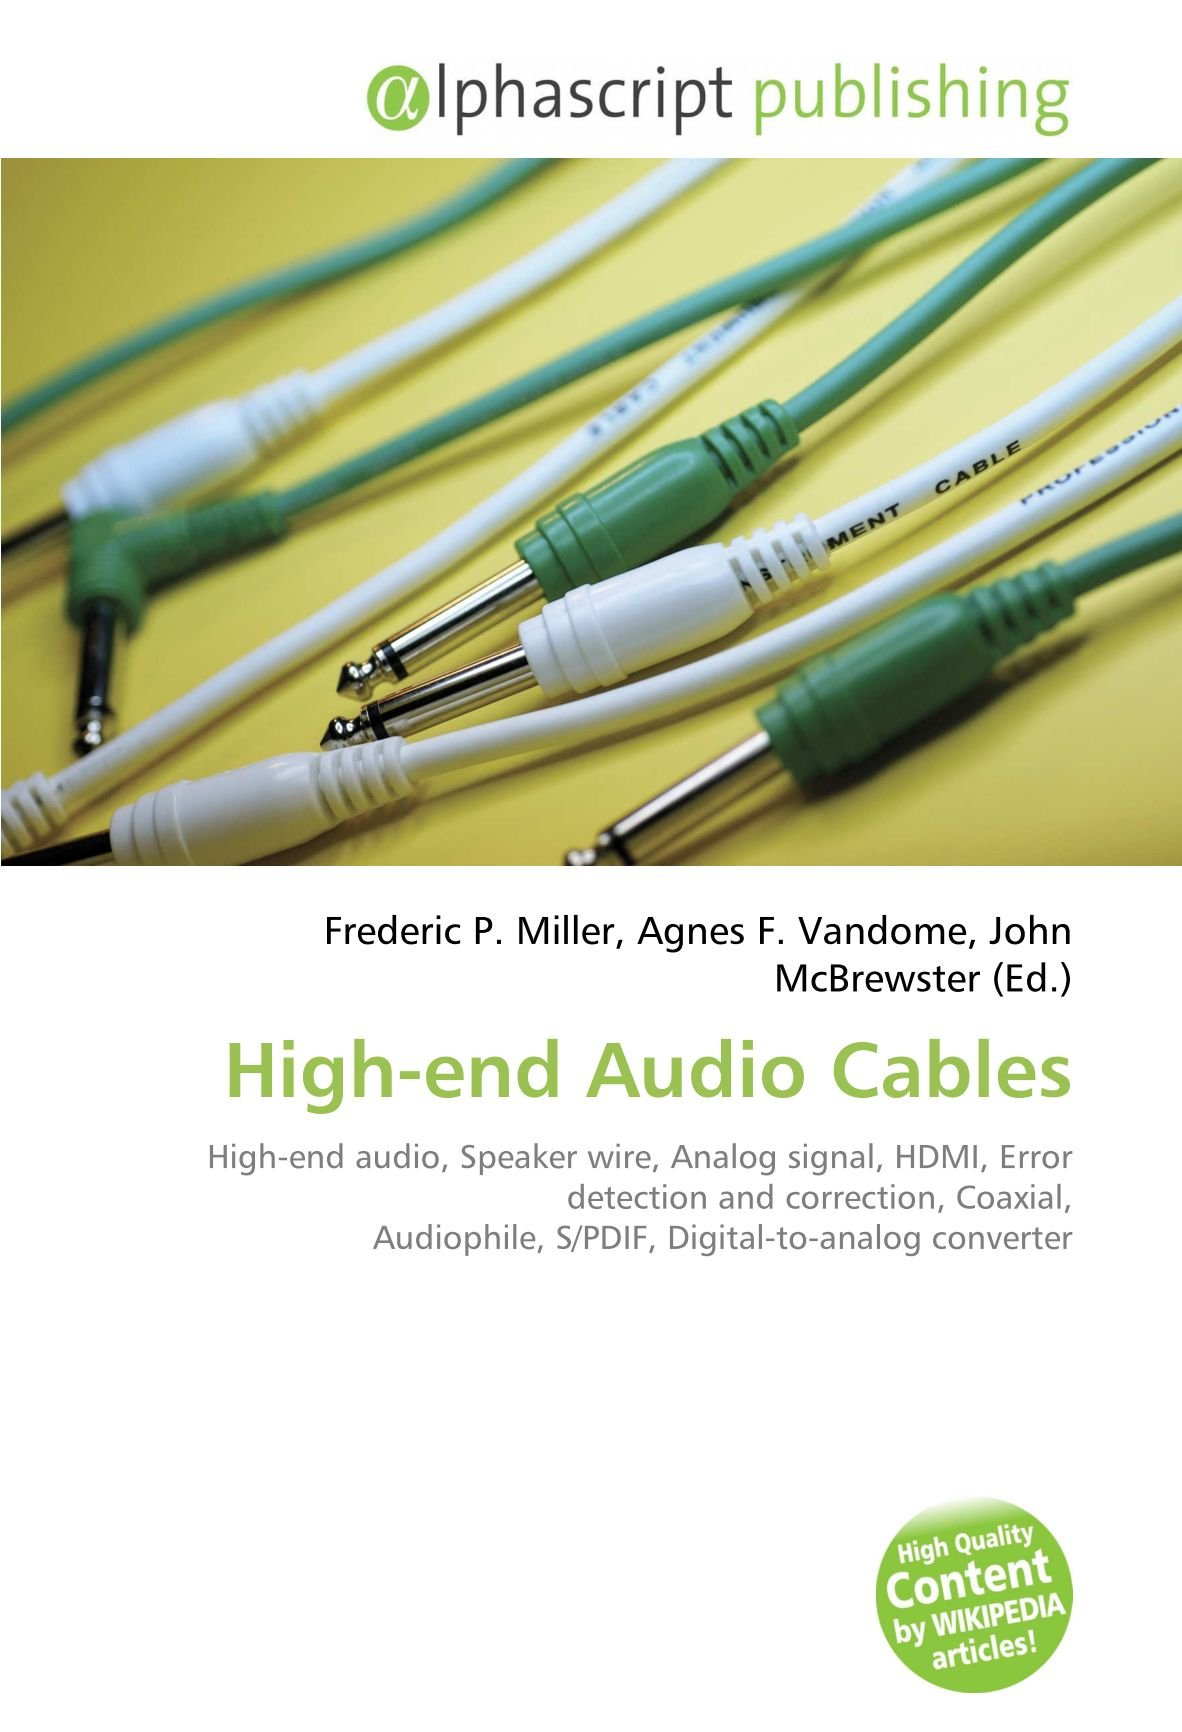 High-End Audio Cables: Amazon.es: Frederic P Miller, Agnes F Vandome, John McBrewster: Libros en idiomas extranjeros